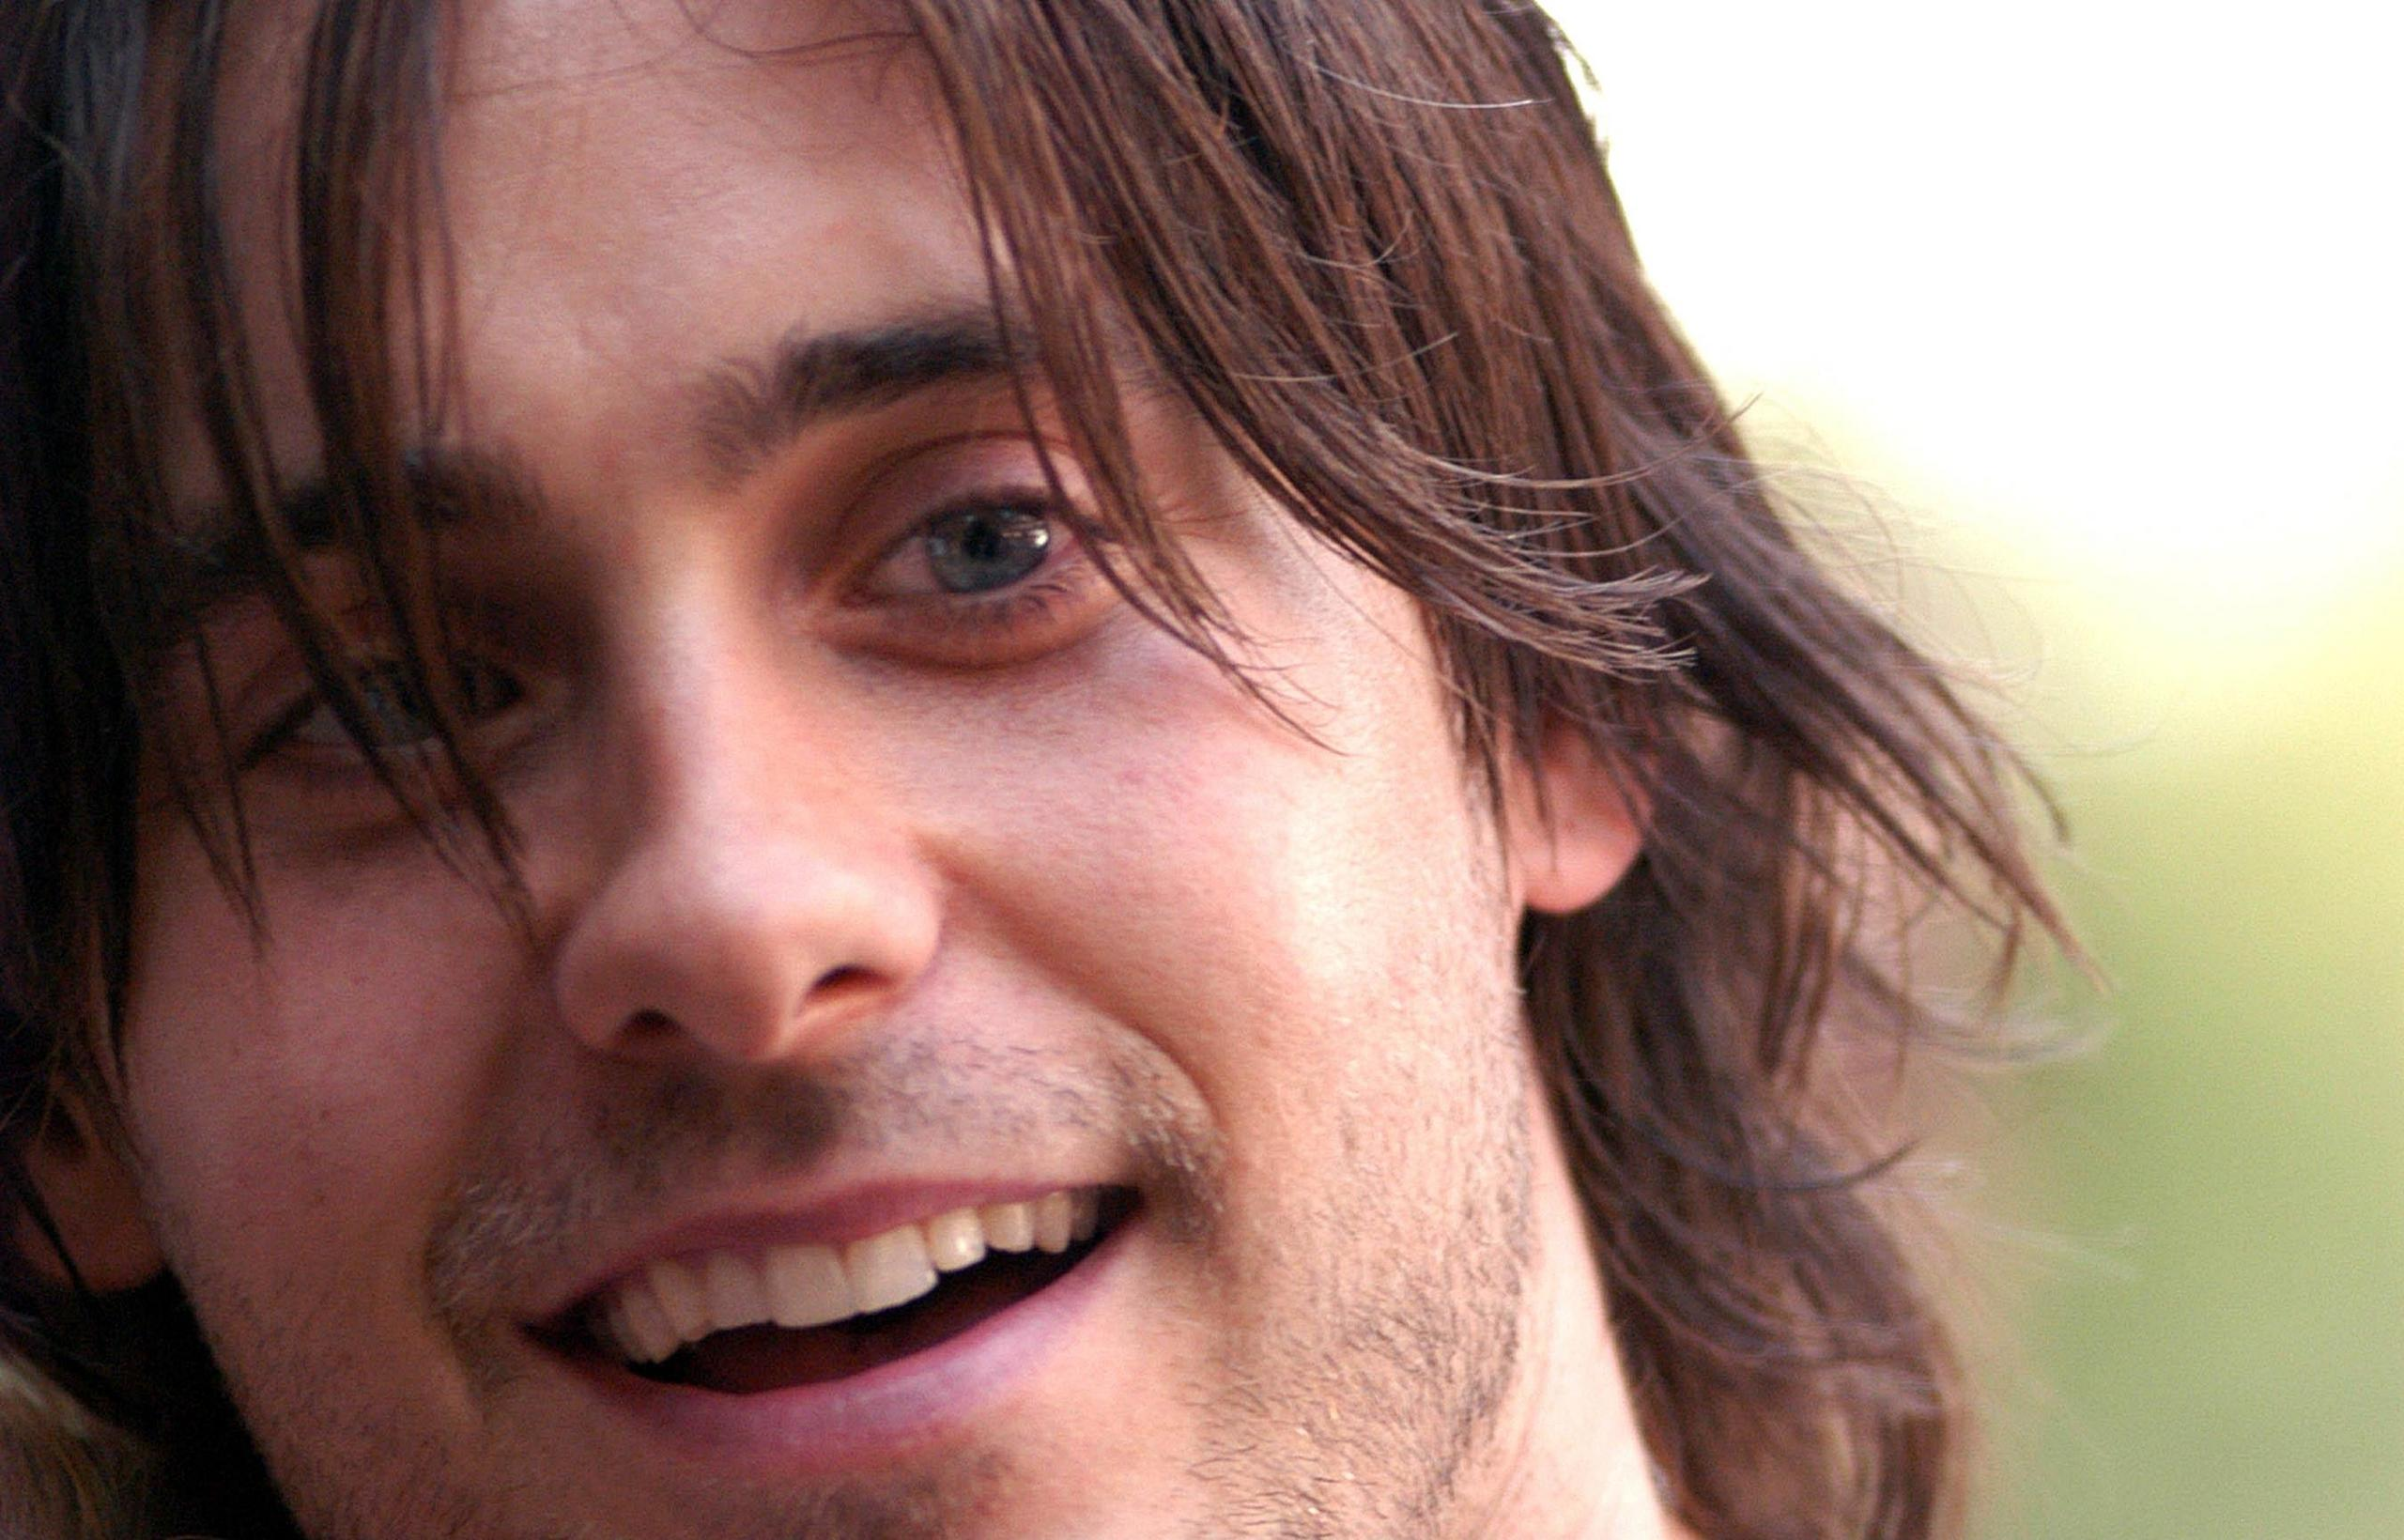 Jared Leto images Jared Leto HD wallpaper and background photos ... Jared Leto